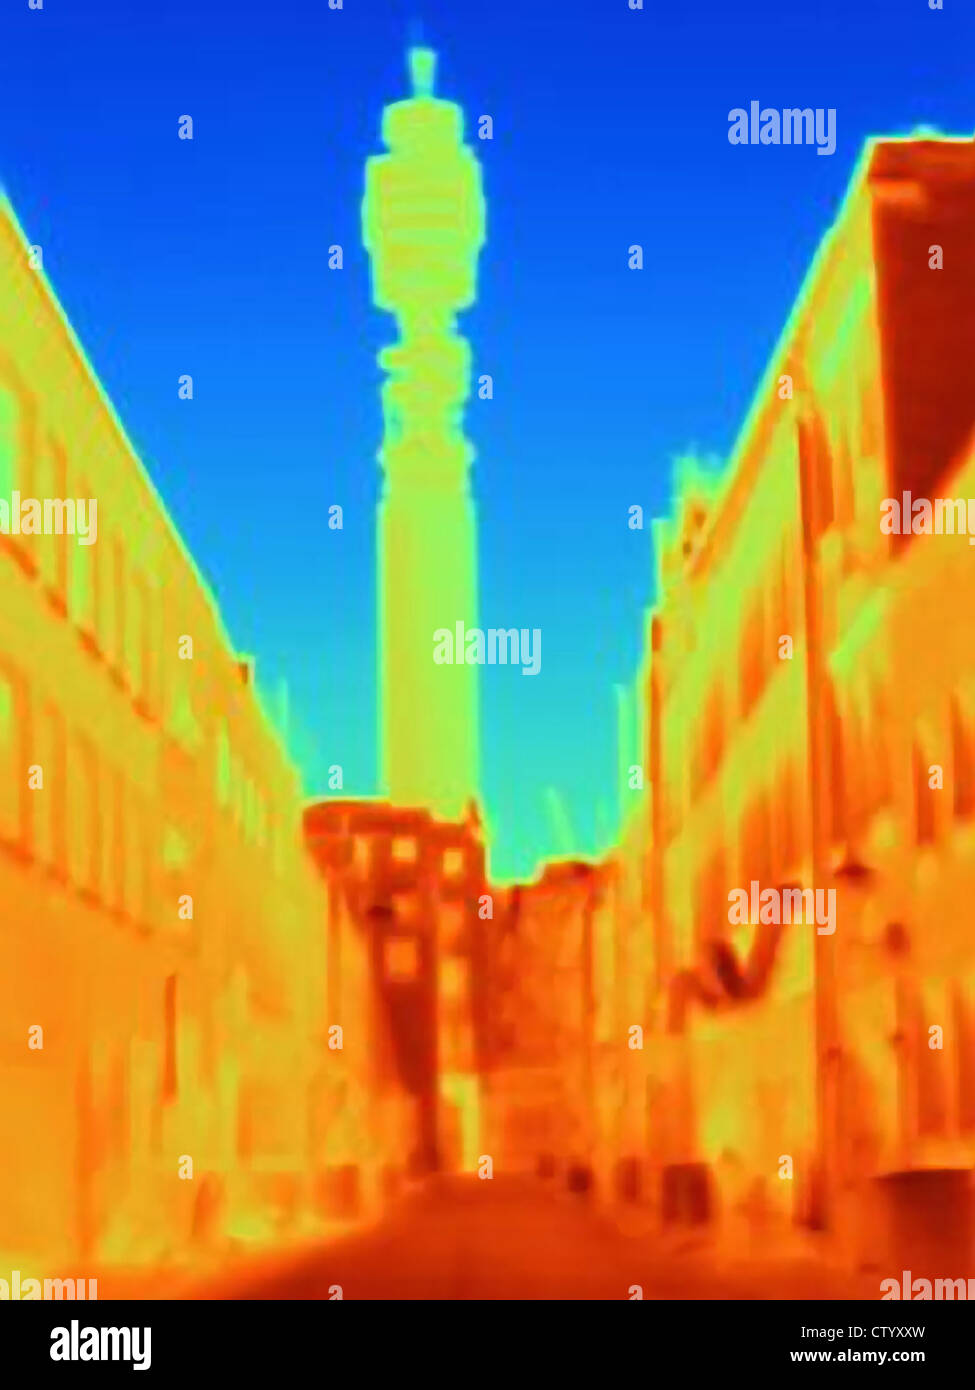 Thermal image of BT Tower - Stock Image